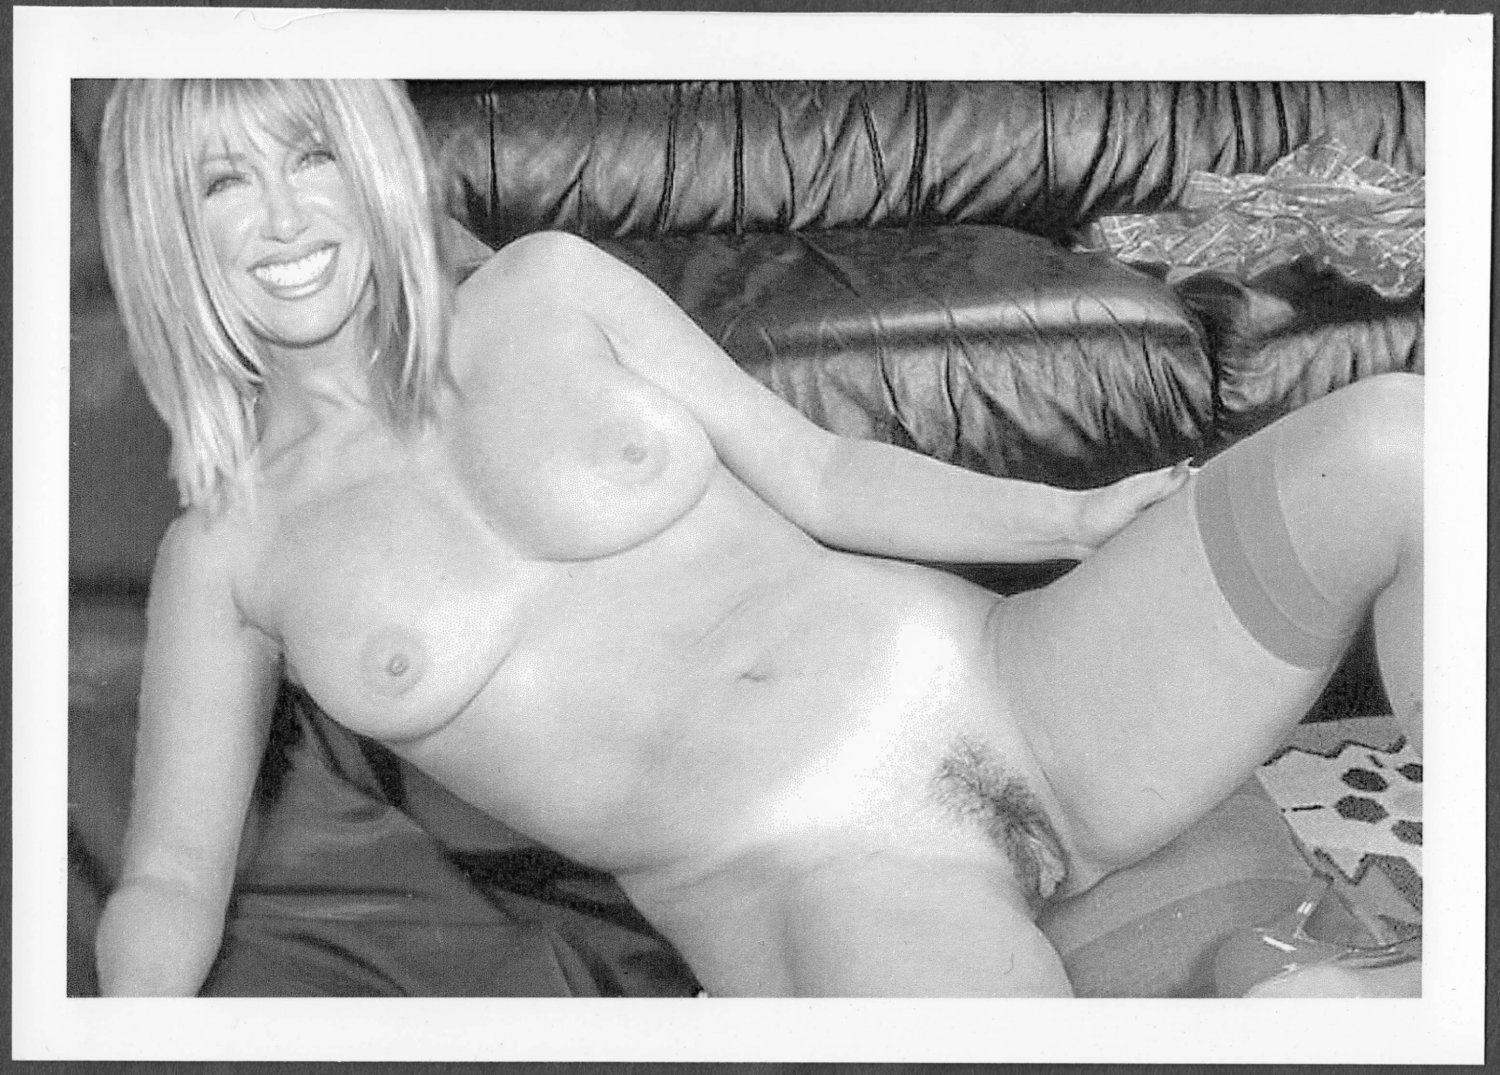 SUZANNE SOMERS TOTALLY NUDE BIG LARGE BREASTS HAIRY PUSSY 5X7 REPRINT SS-007